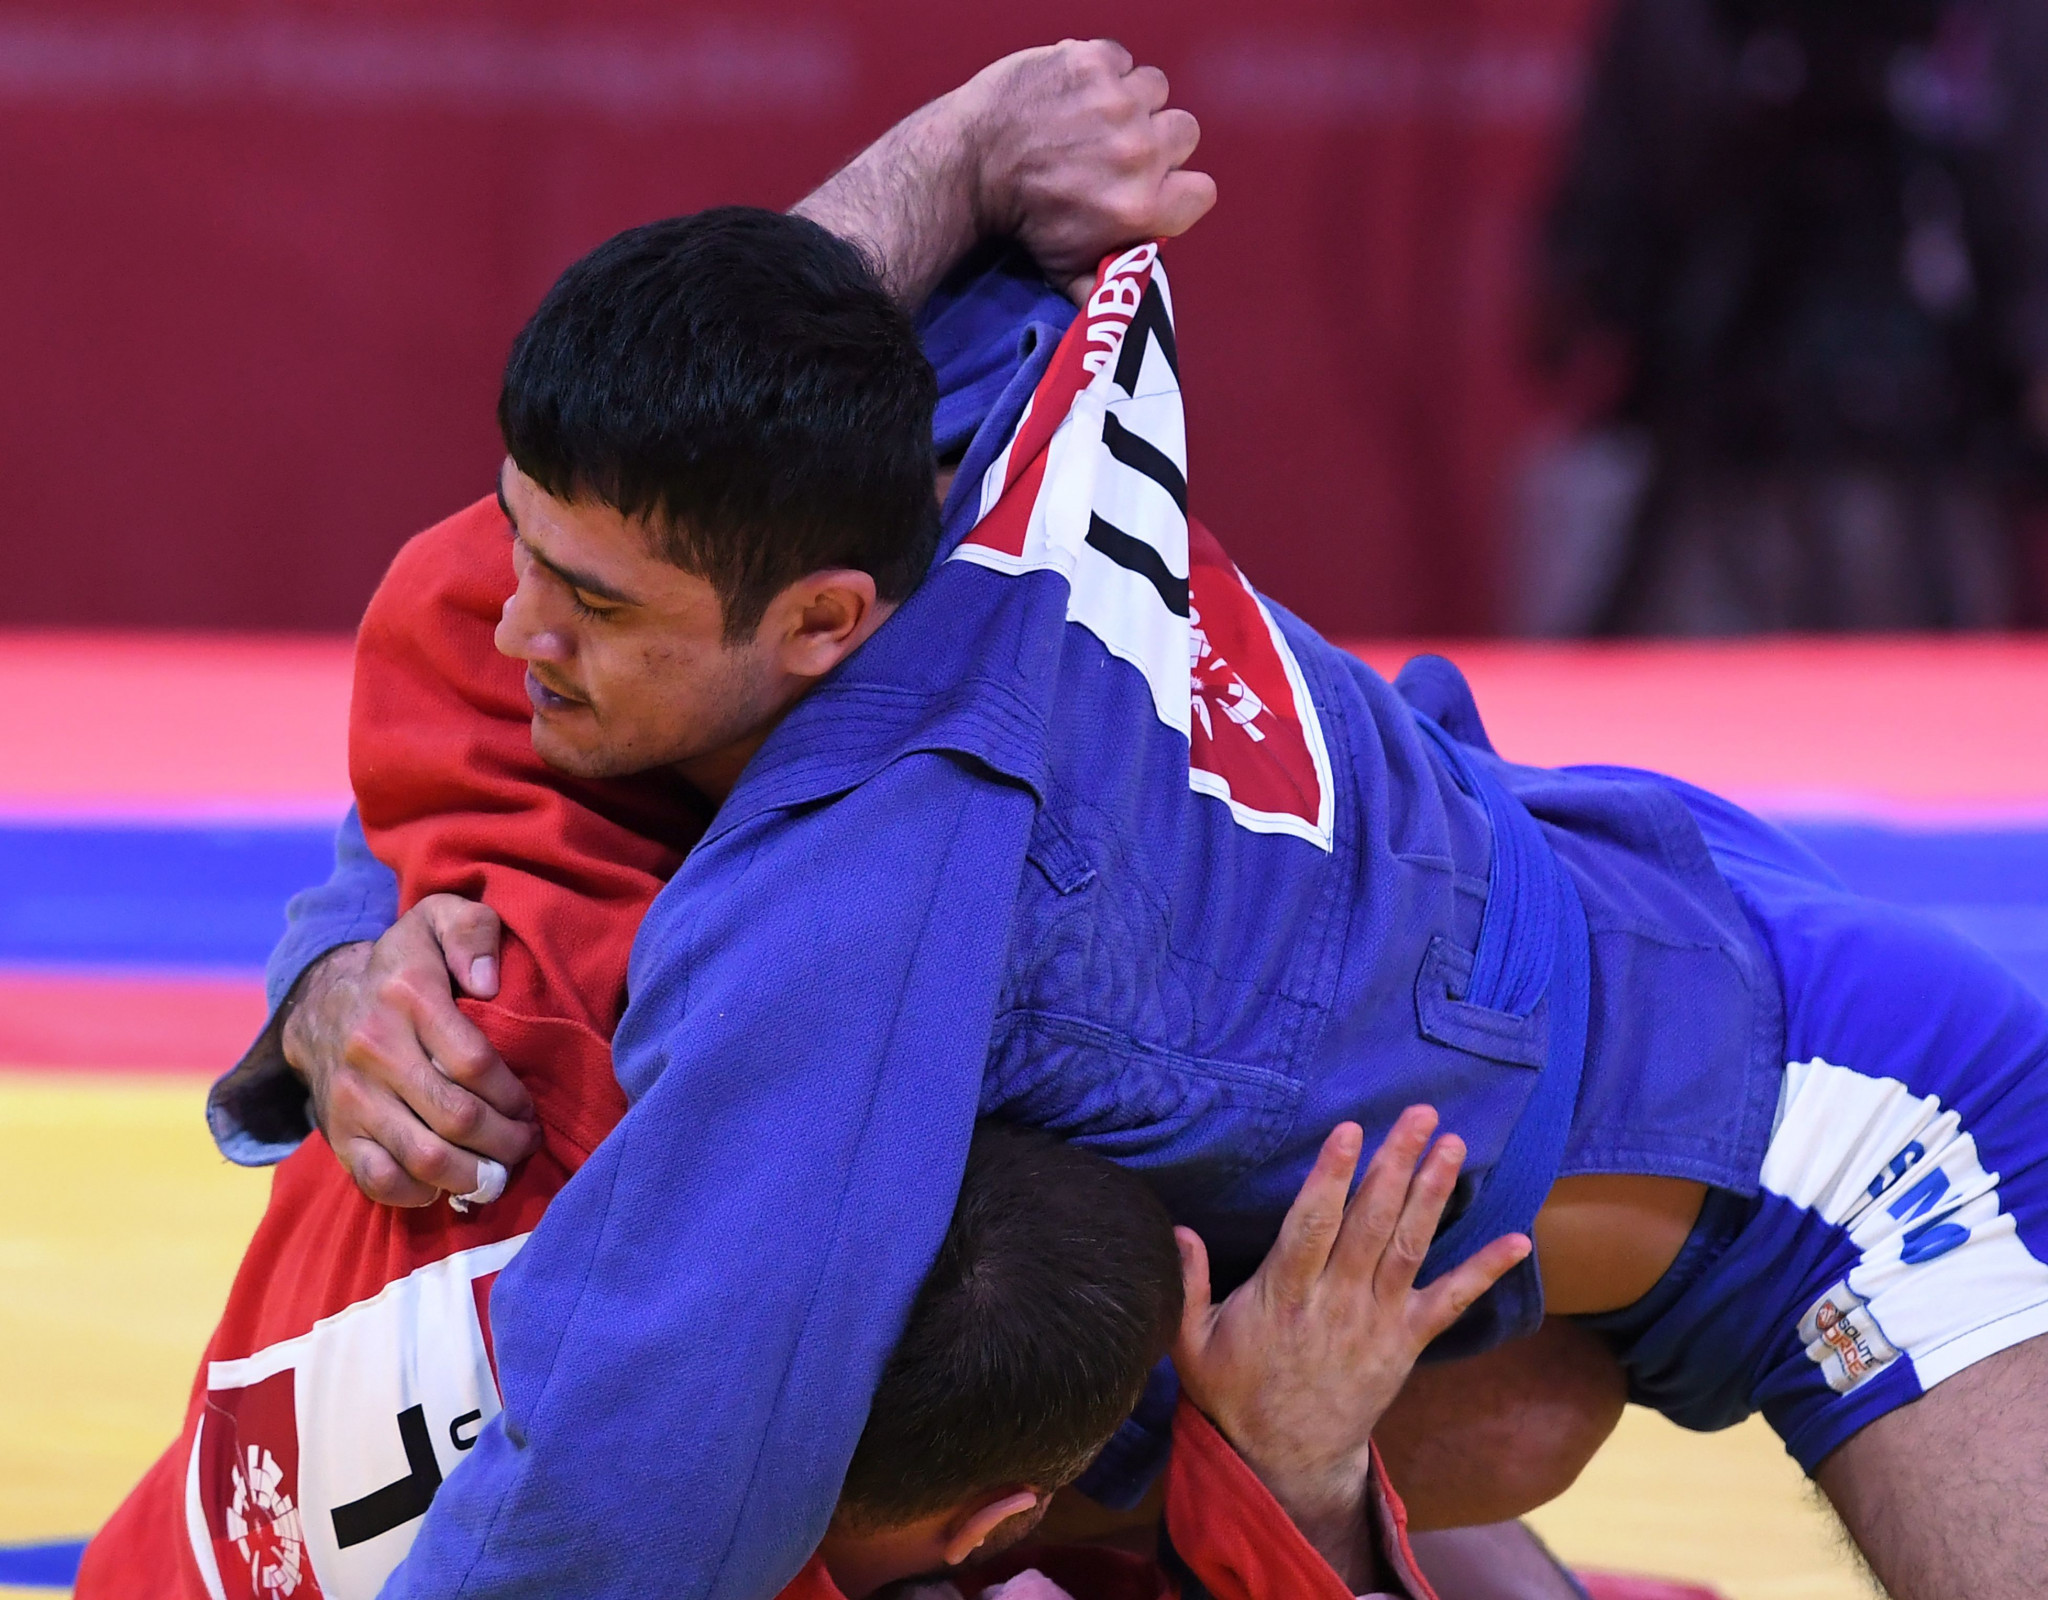 The event will challenge players on their knowledge of sambo techniques ©Getty Images